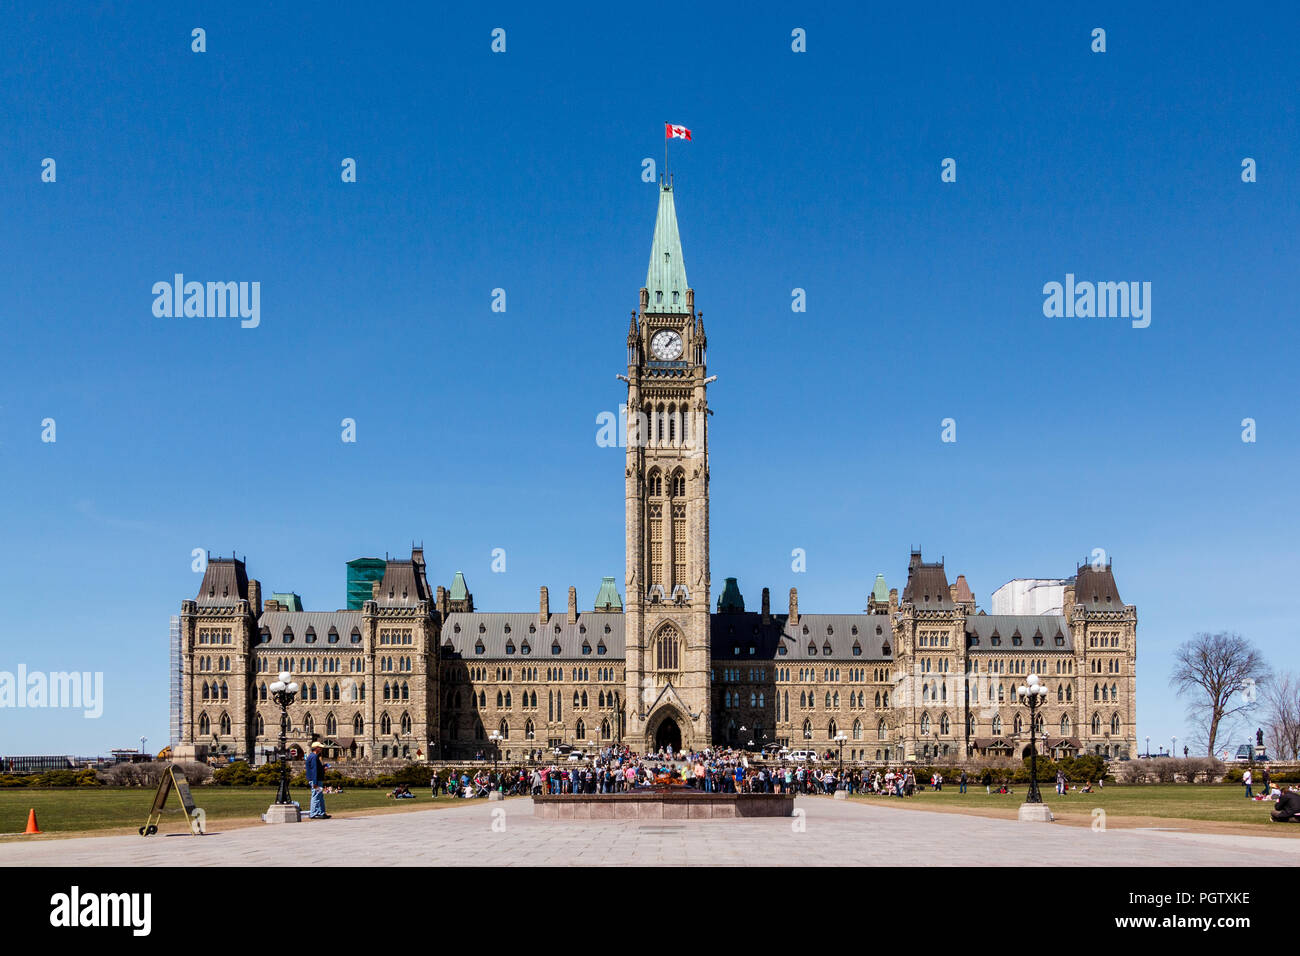 Canadian Parliament on a sunny clear day - Stock Image